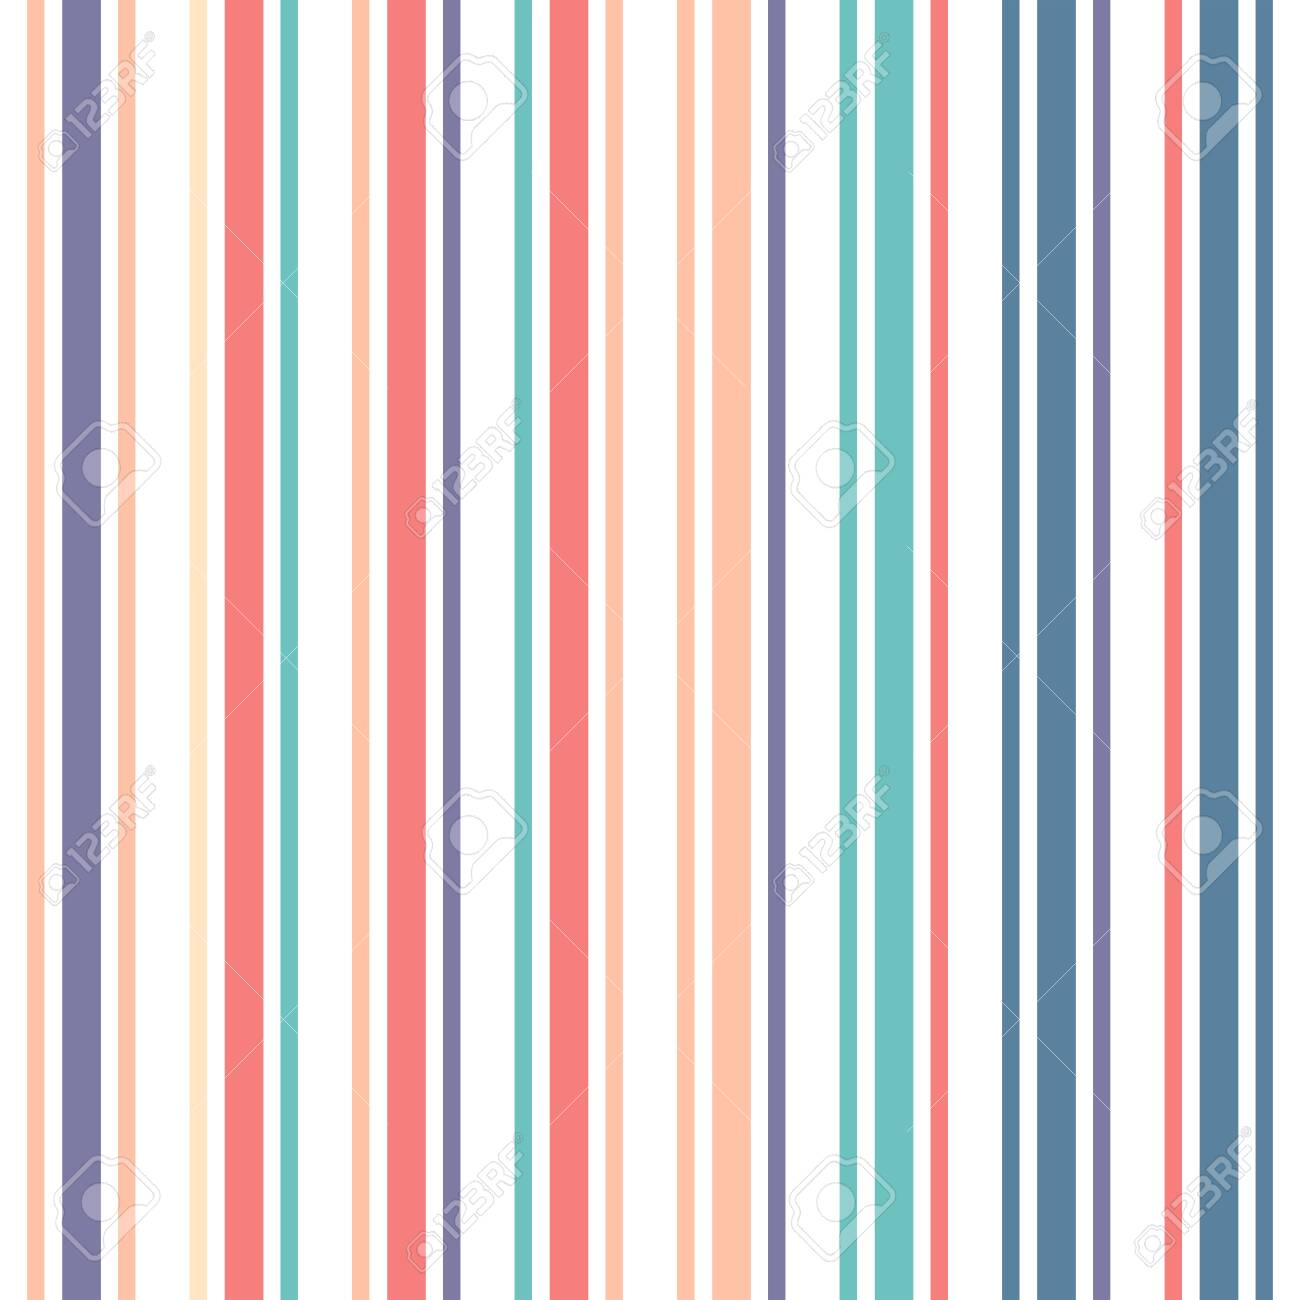 Vertical Stripes Seamless Pattern Autumn Winter Business Suit Royalty Free Cliparts Vectors And Stock Illustration Image 140699778